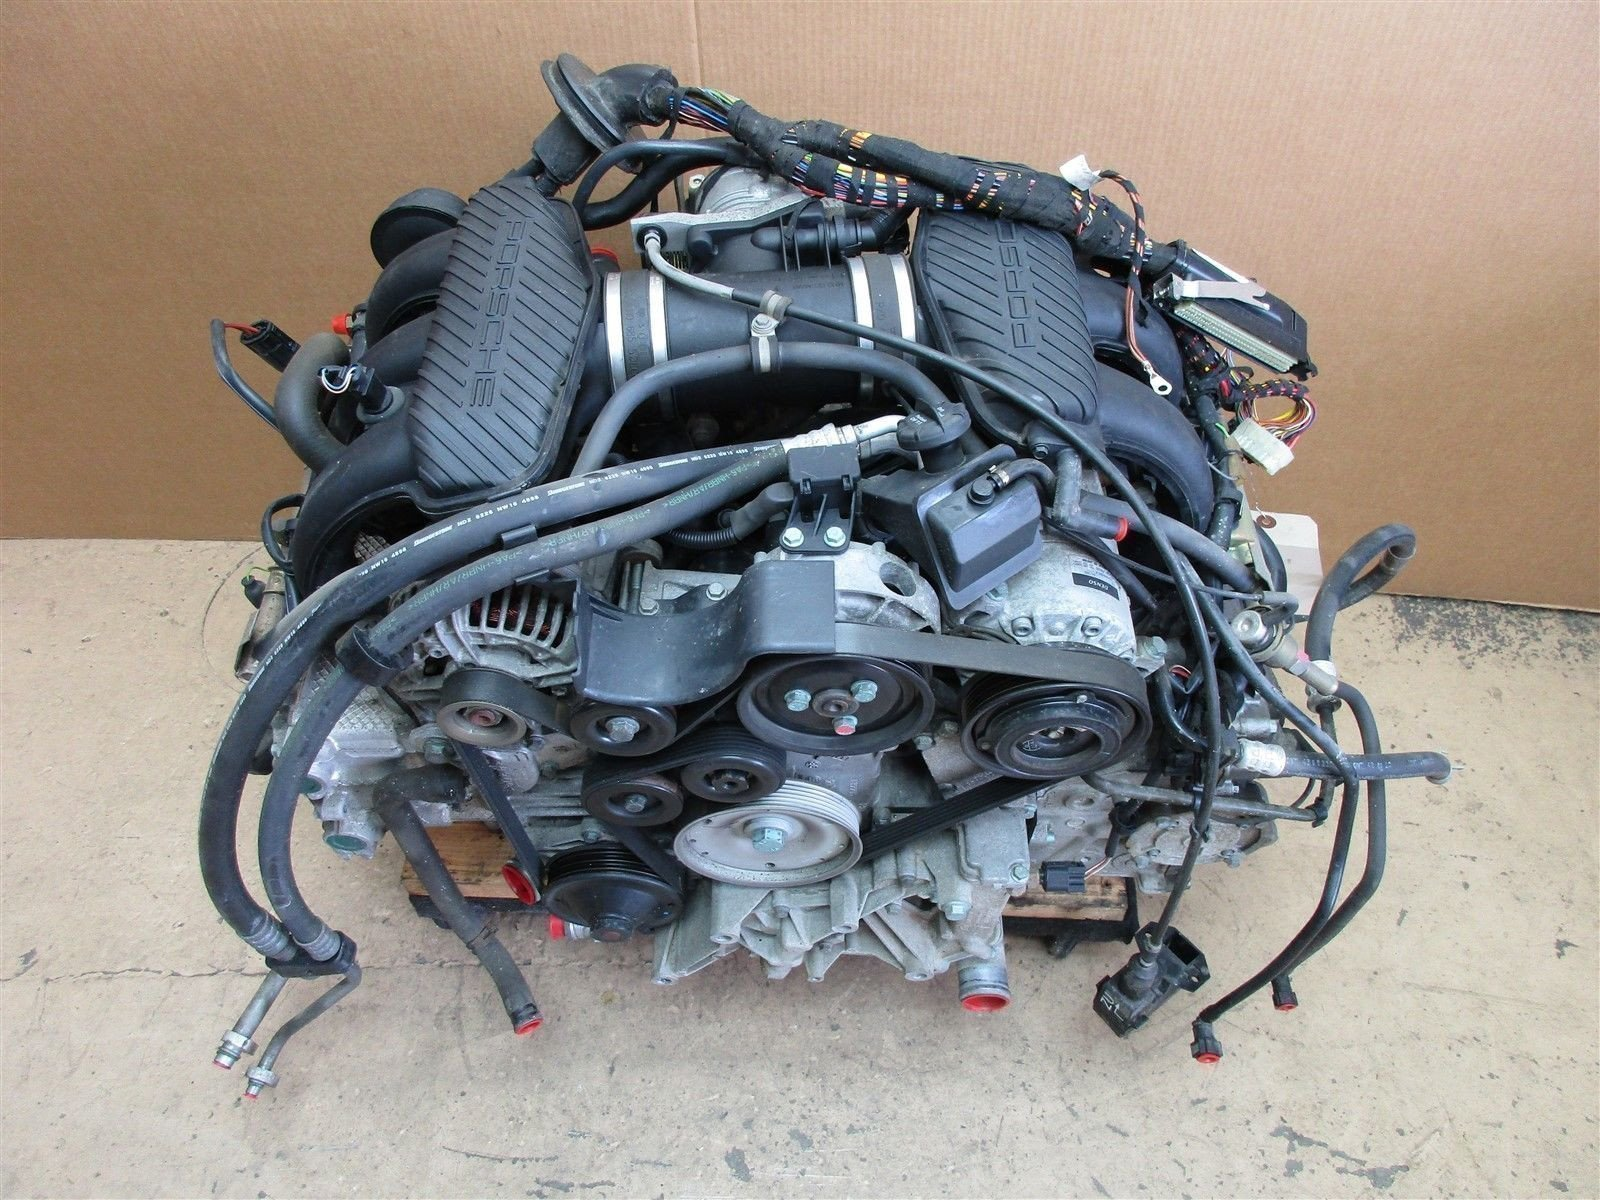 99 Boxster RWD Porsche 986 COMPLETE ENGINE 2.5 Motor M96/20 M96.20 N/A 128,729